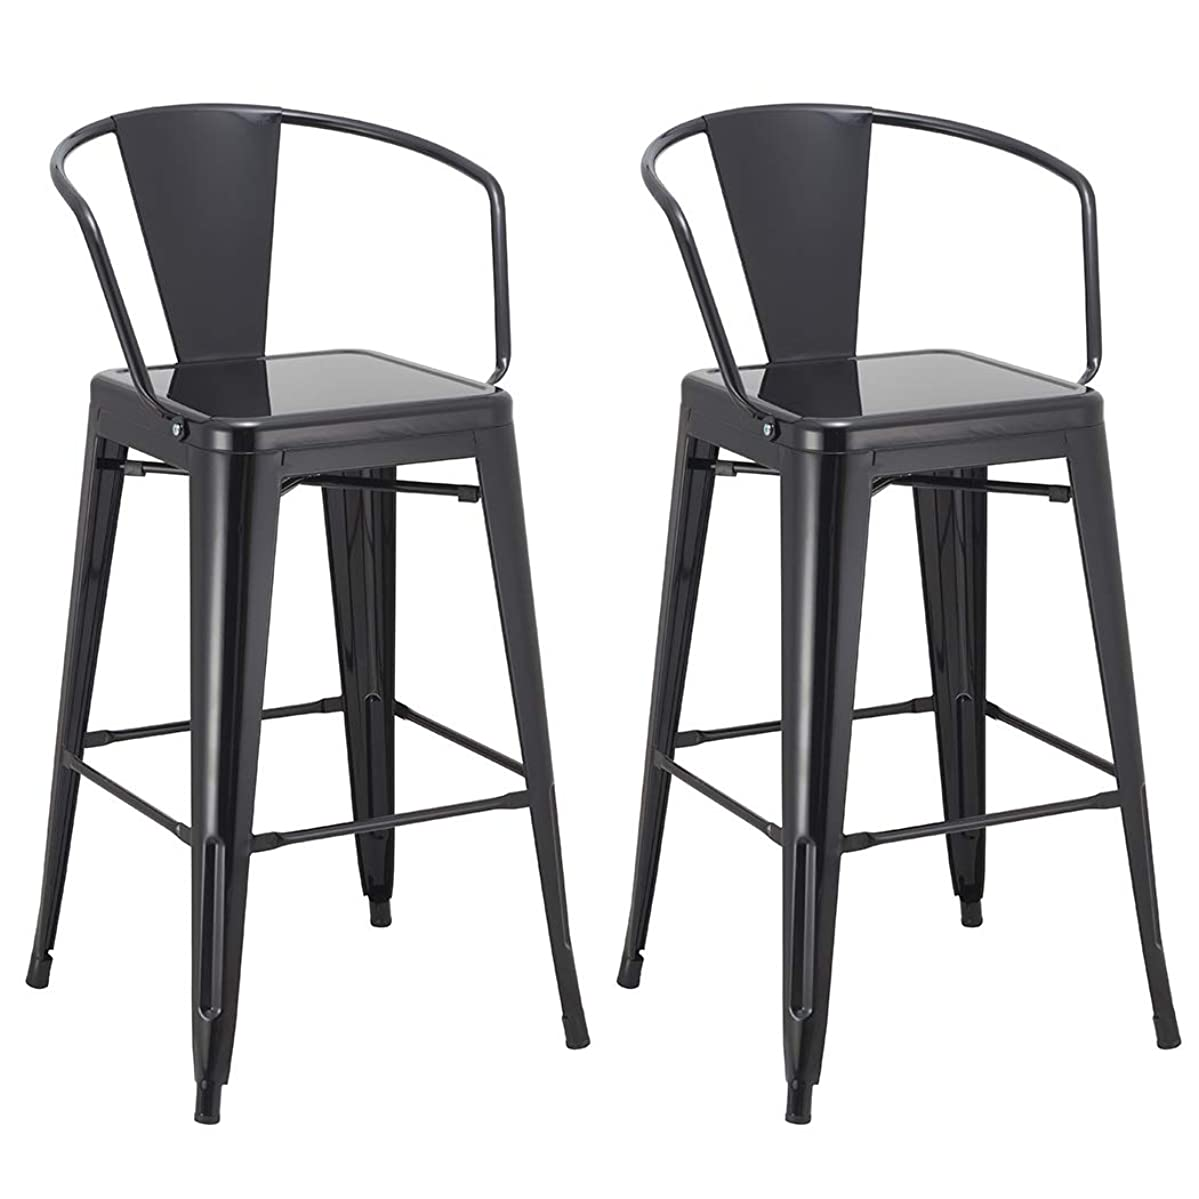 Duhome 2 pcs 30' Metal Bar Stools Bar Chair with Backrest Industrial Style Kitchen Counter Top High Barstool Pub Bistro (Black)